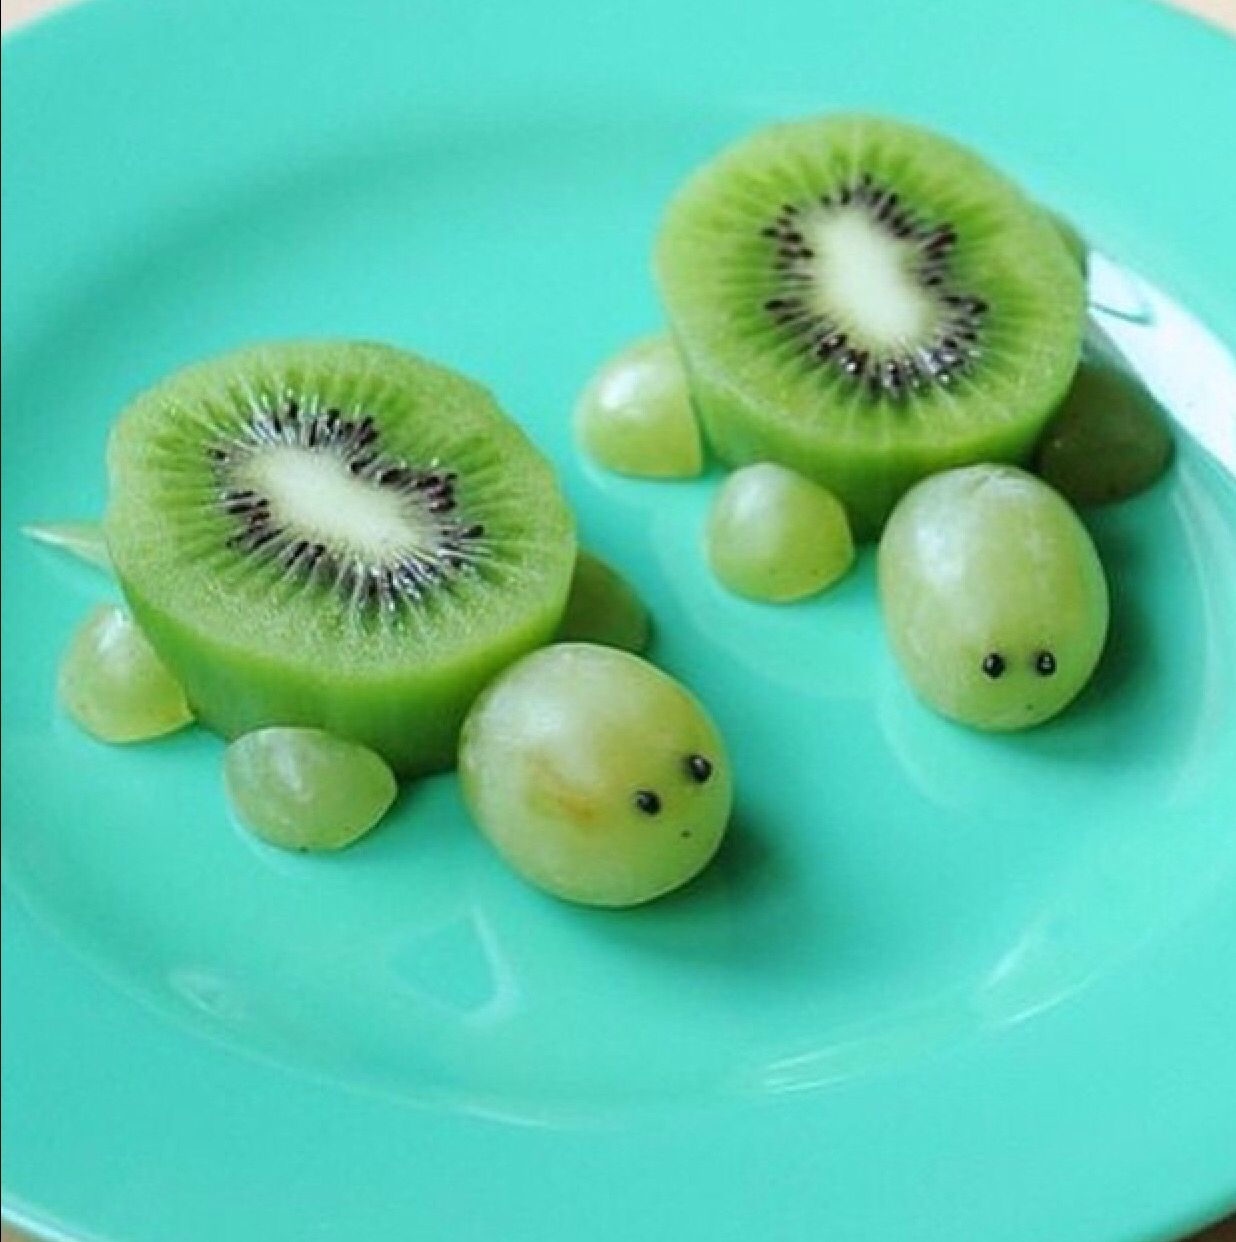 Pin By Isobel On Isobel May Ledden In 2019: Great Way To Get Your Young Children To Eat Their Fruits